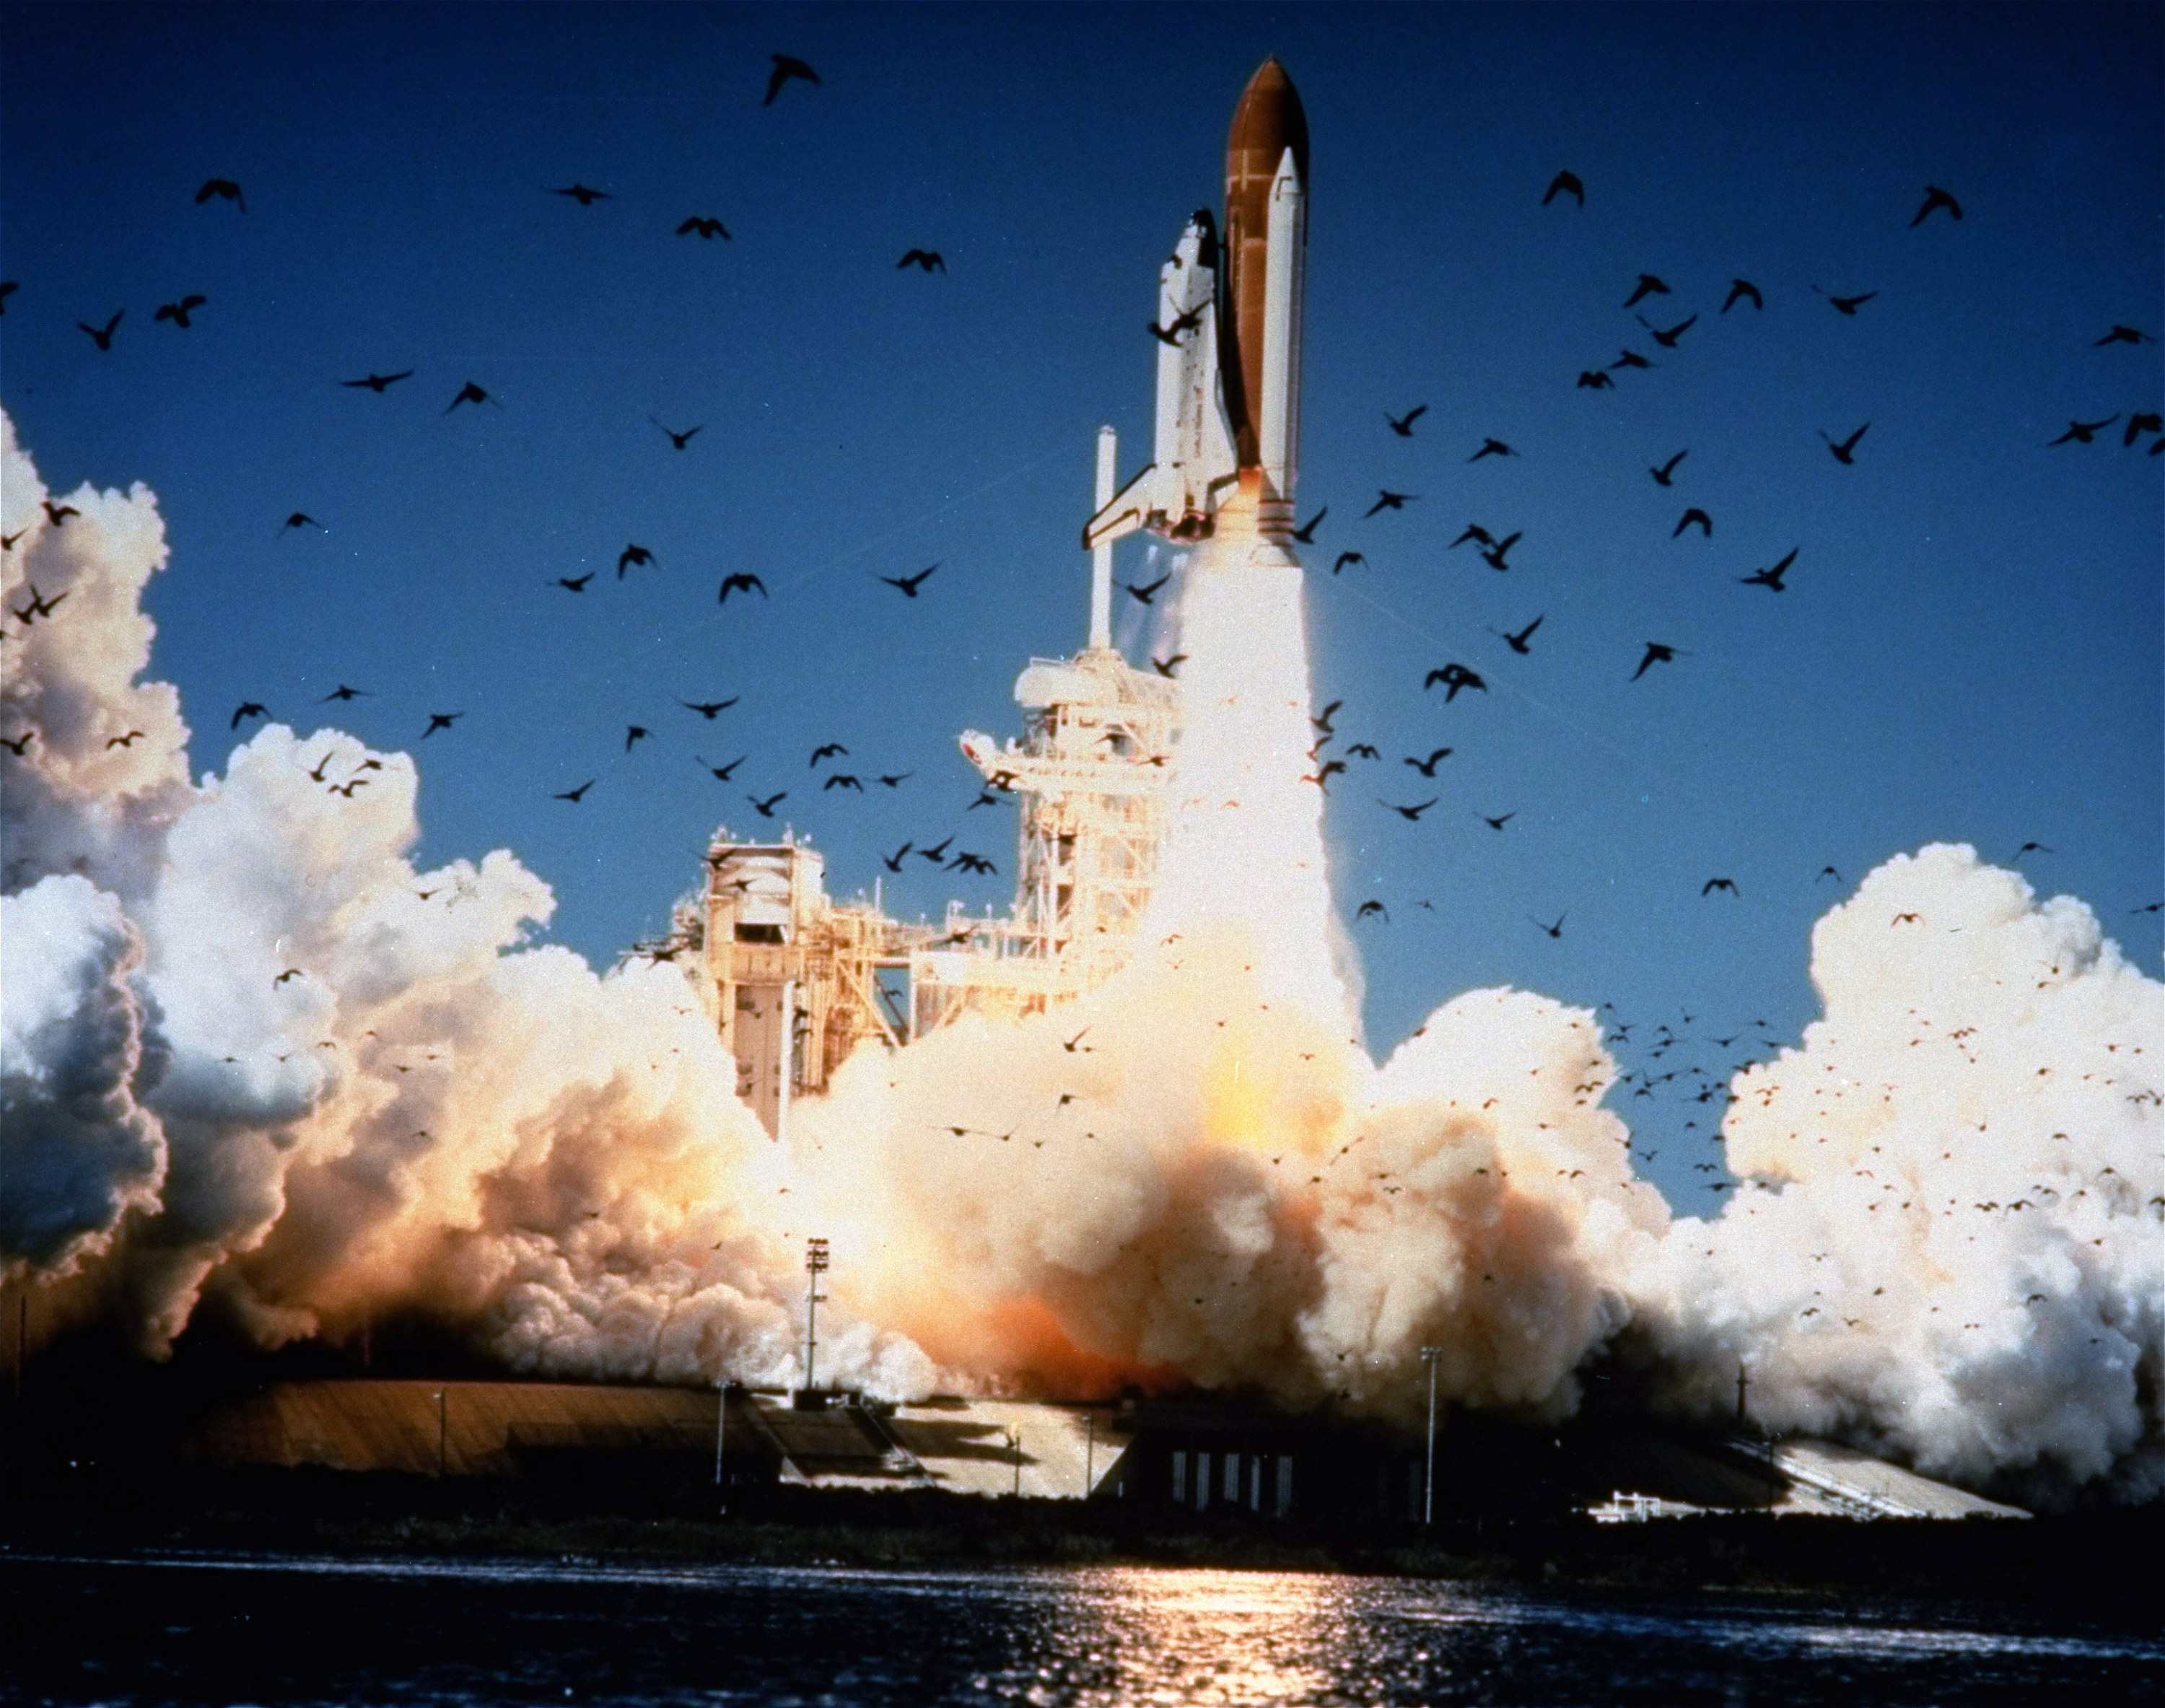 space shuttle challenger disaster and people